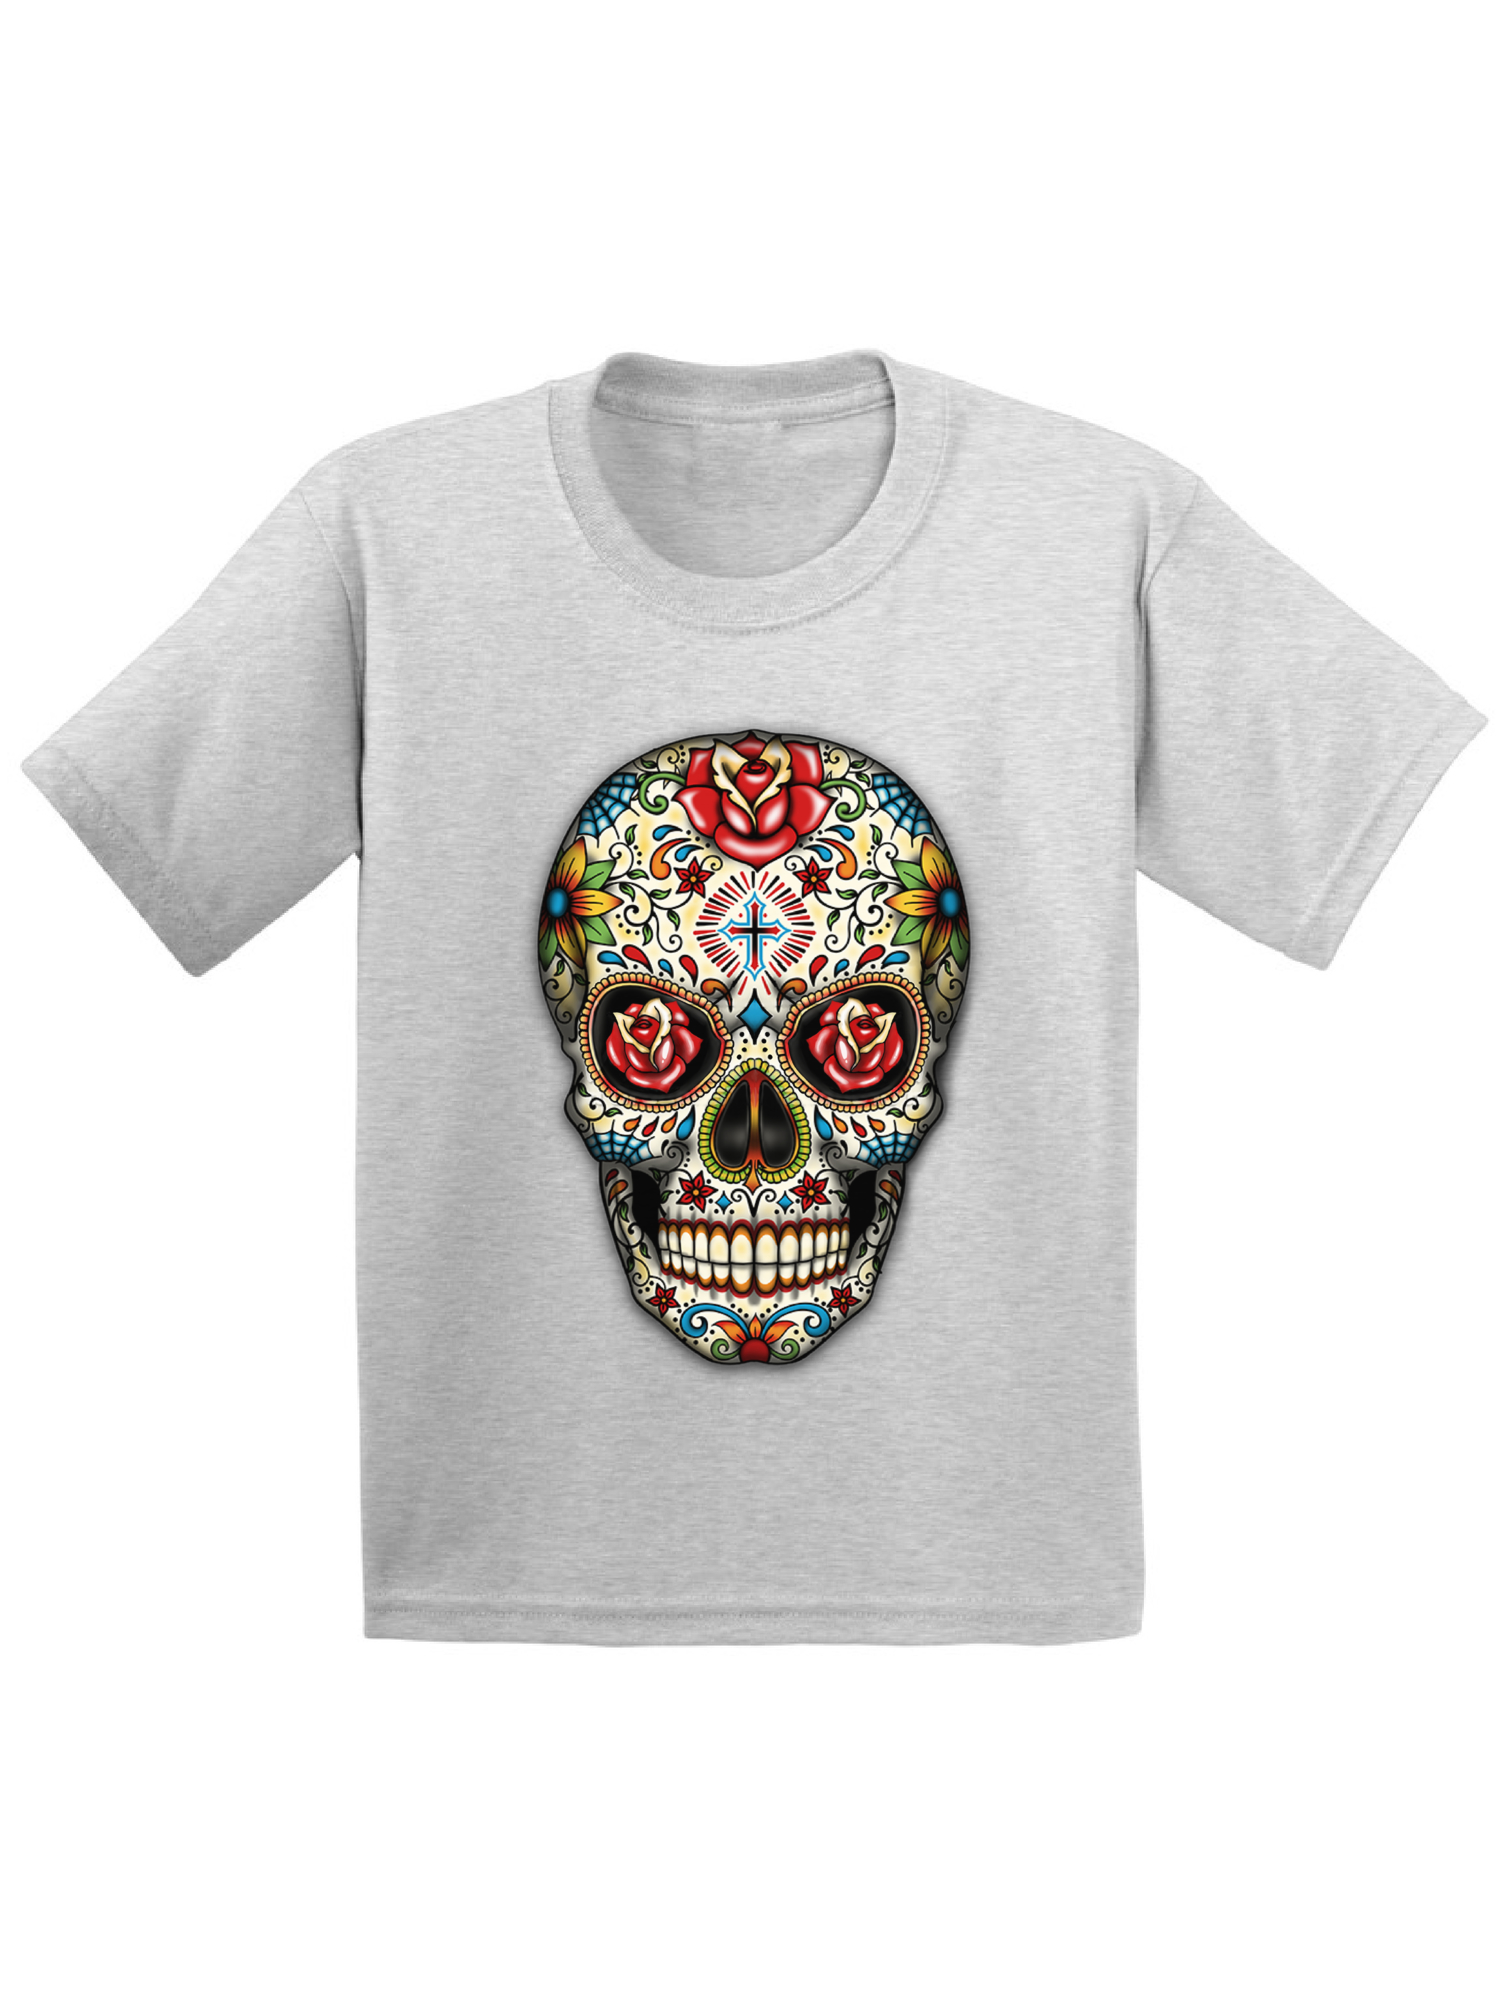 9f2422ef Awkward Styles Rose Eyes Skull Tshirt for Kids Sugar Skull Roses Shirt  Sugar Skull T Shirt Dia de los Muertos Outfit Day of the Dead Gifts  Halloween Shirts ...